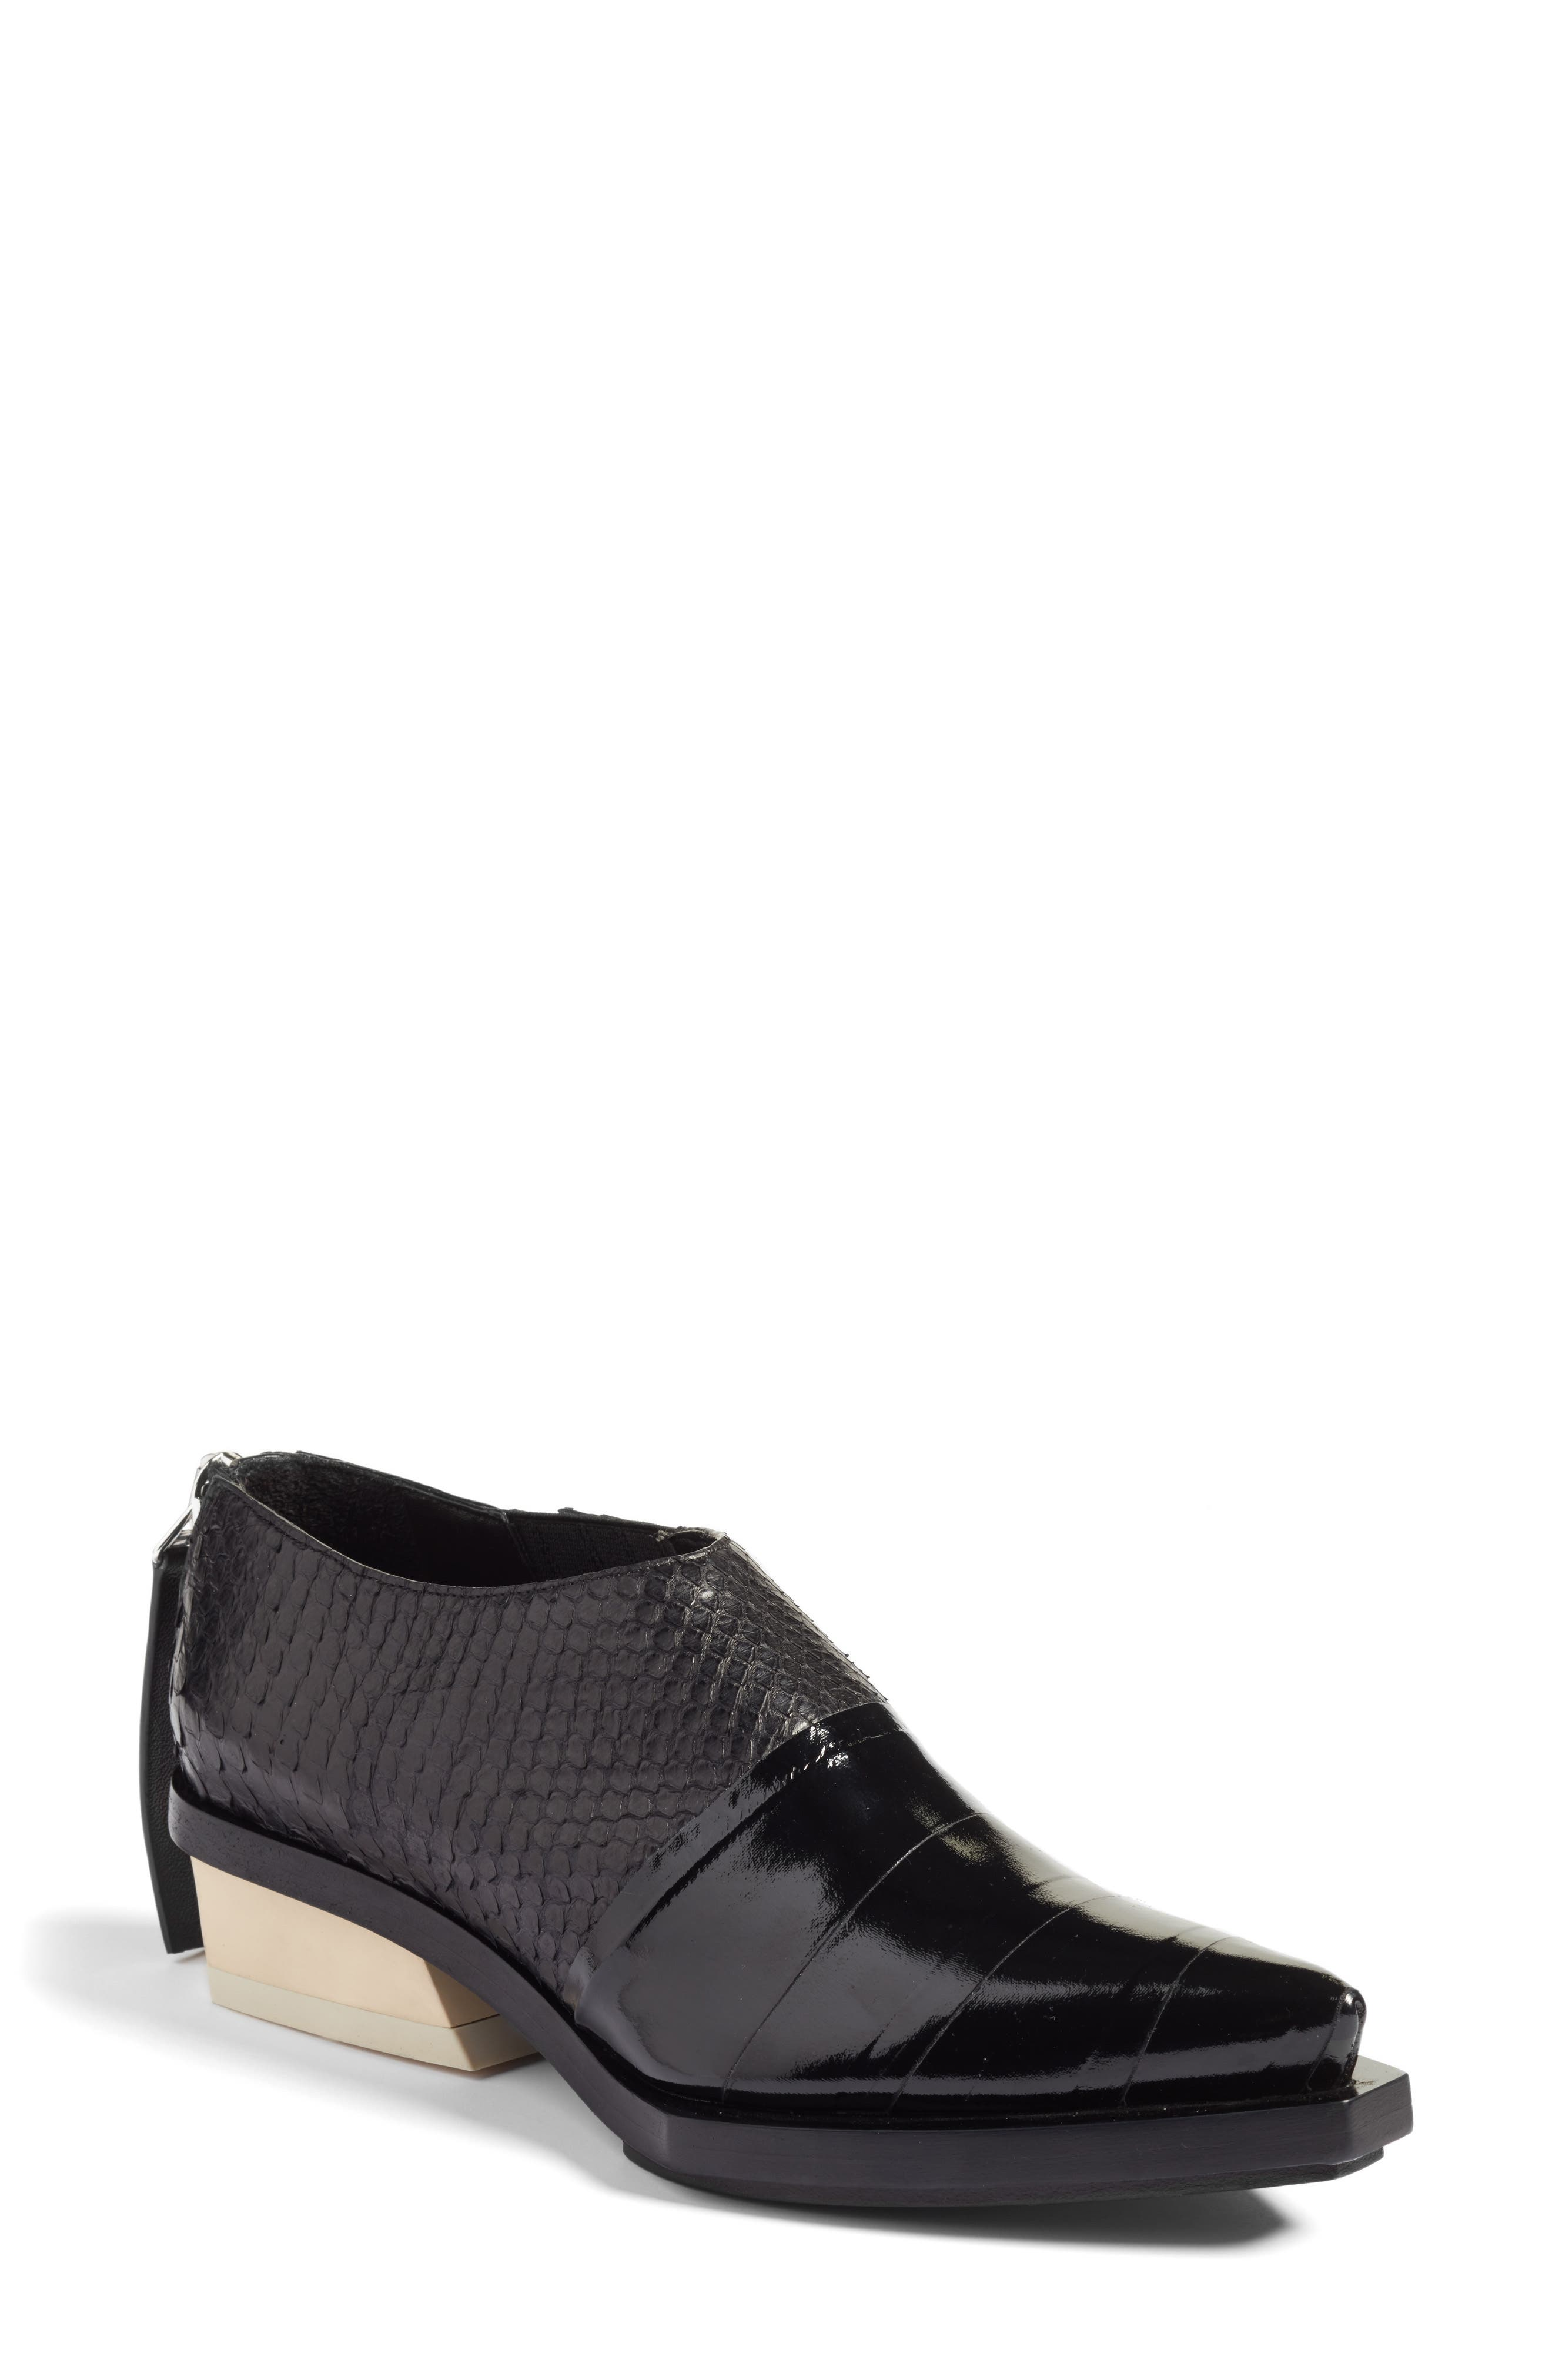 Proenza Schouler Mixed Media Bootie (Women)